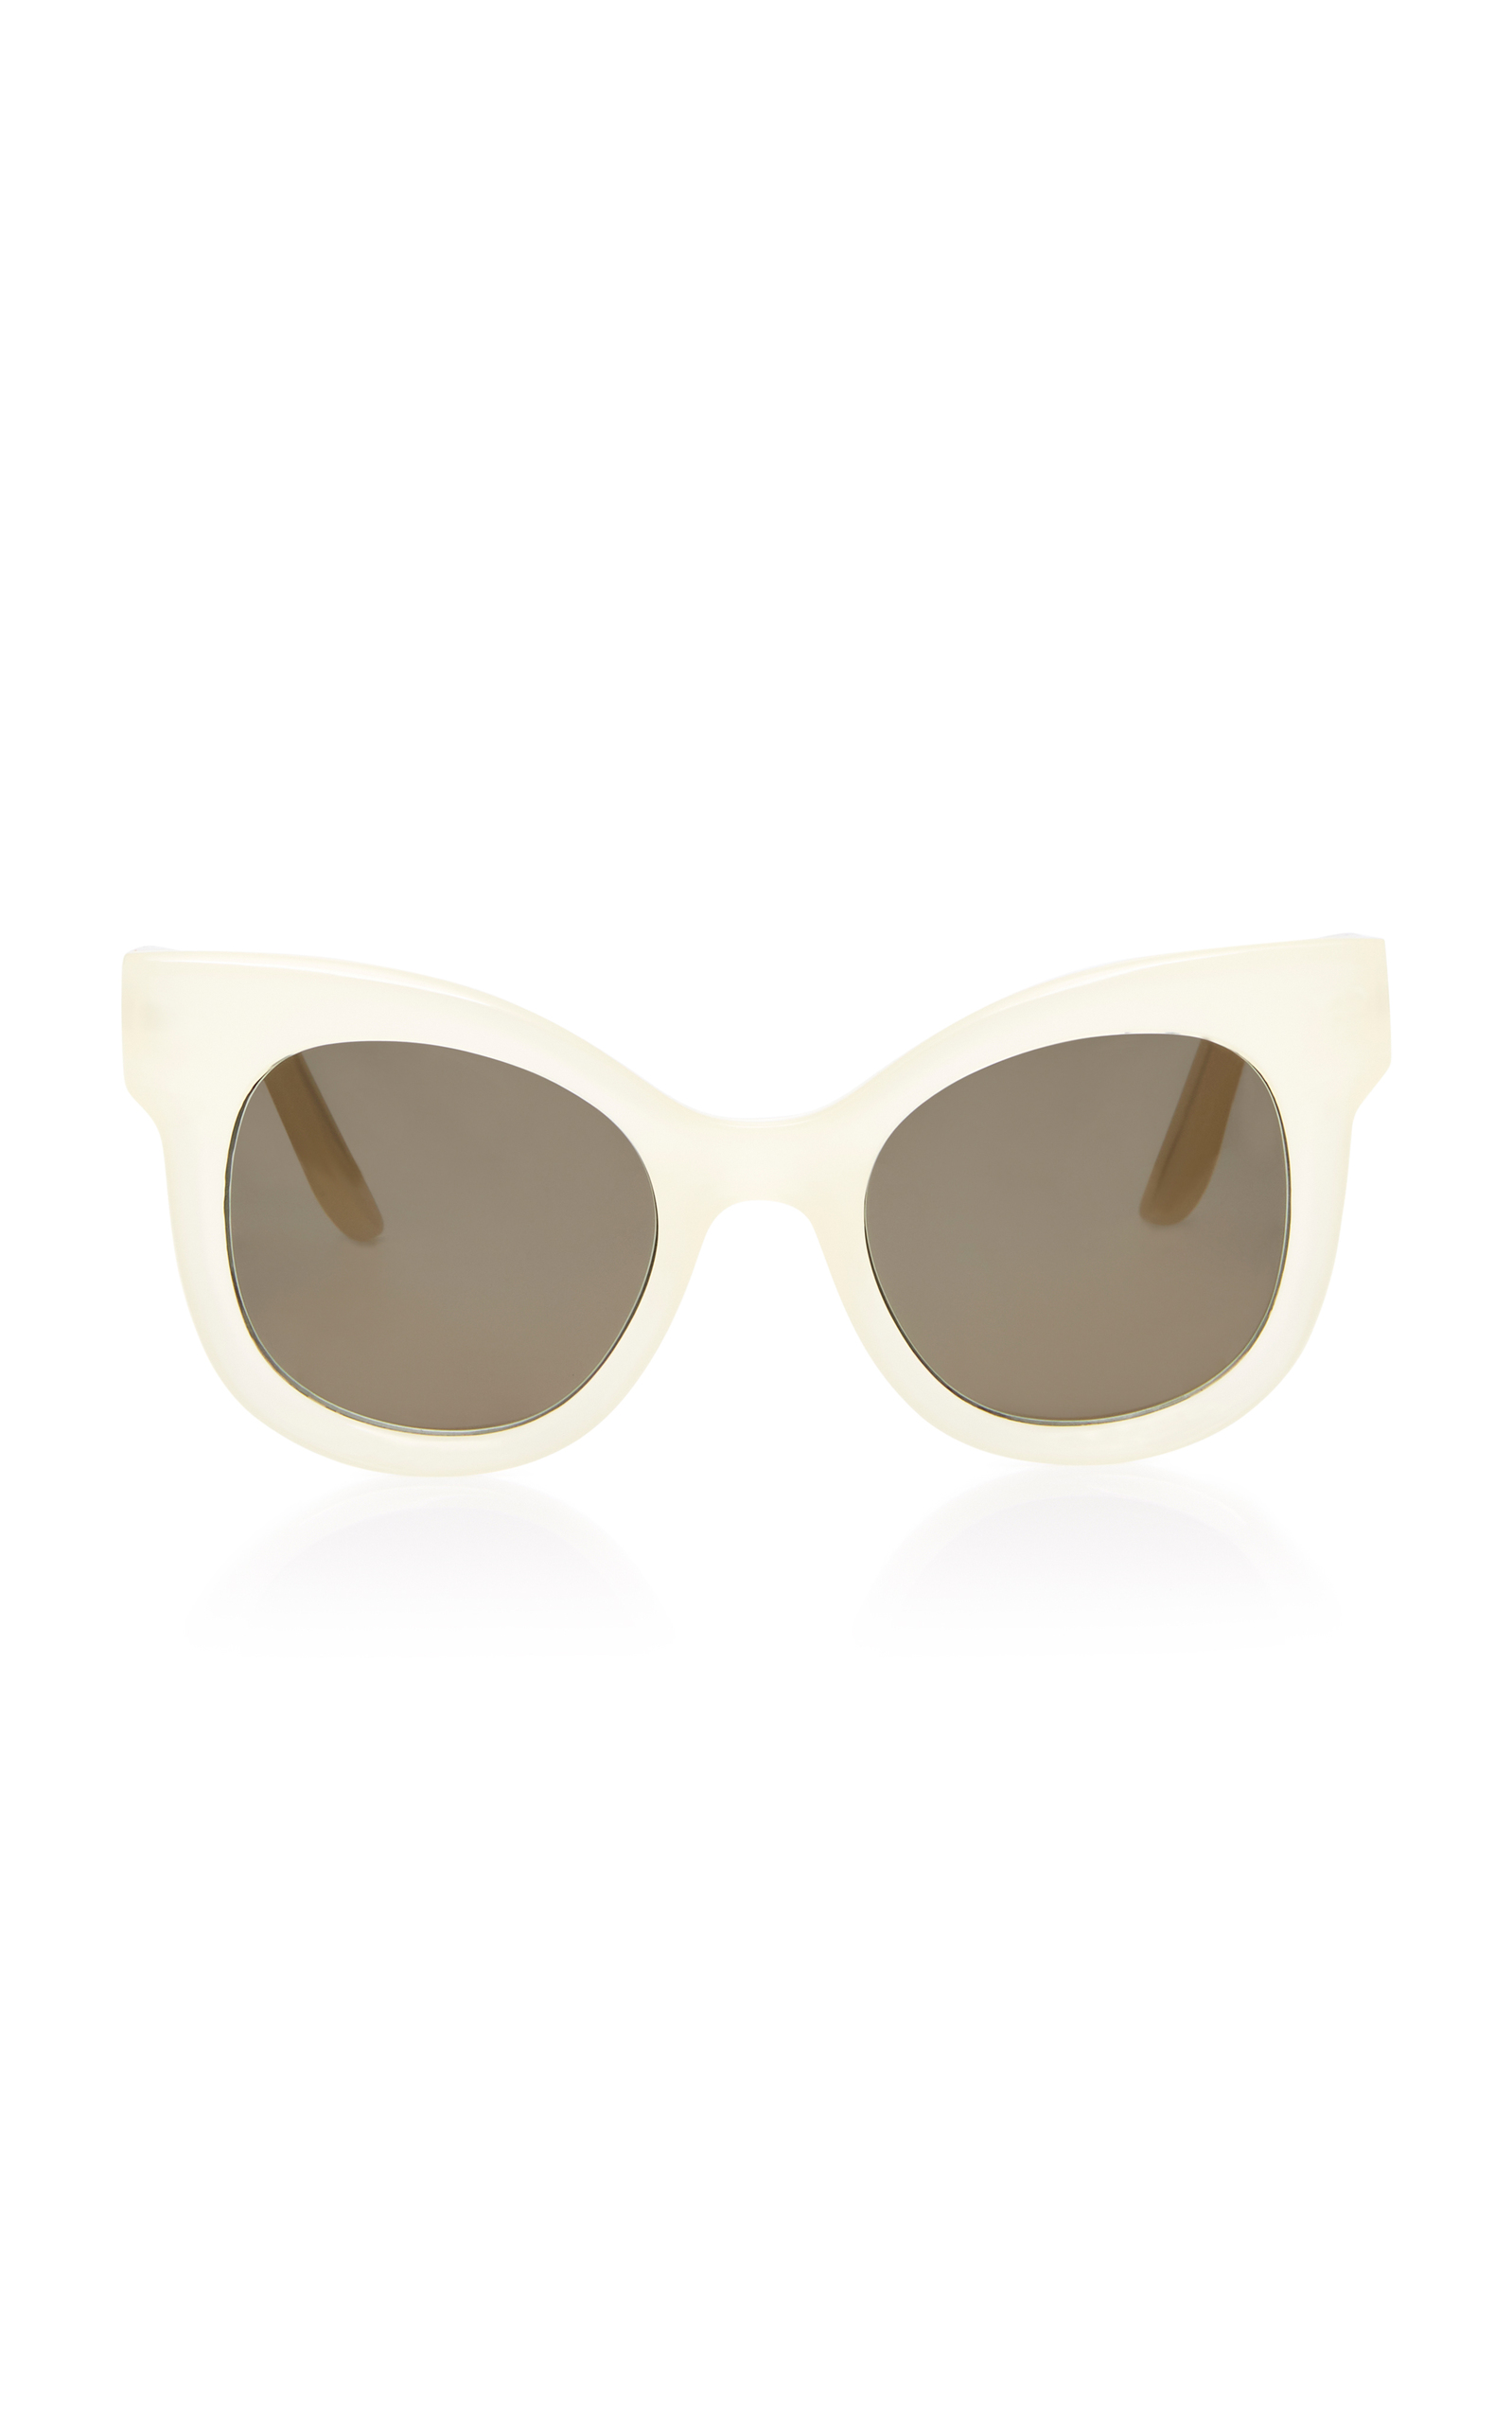 LAPIMA LILAS CAT-EYE ACETATE SUNGLASSES